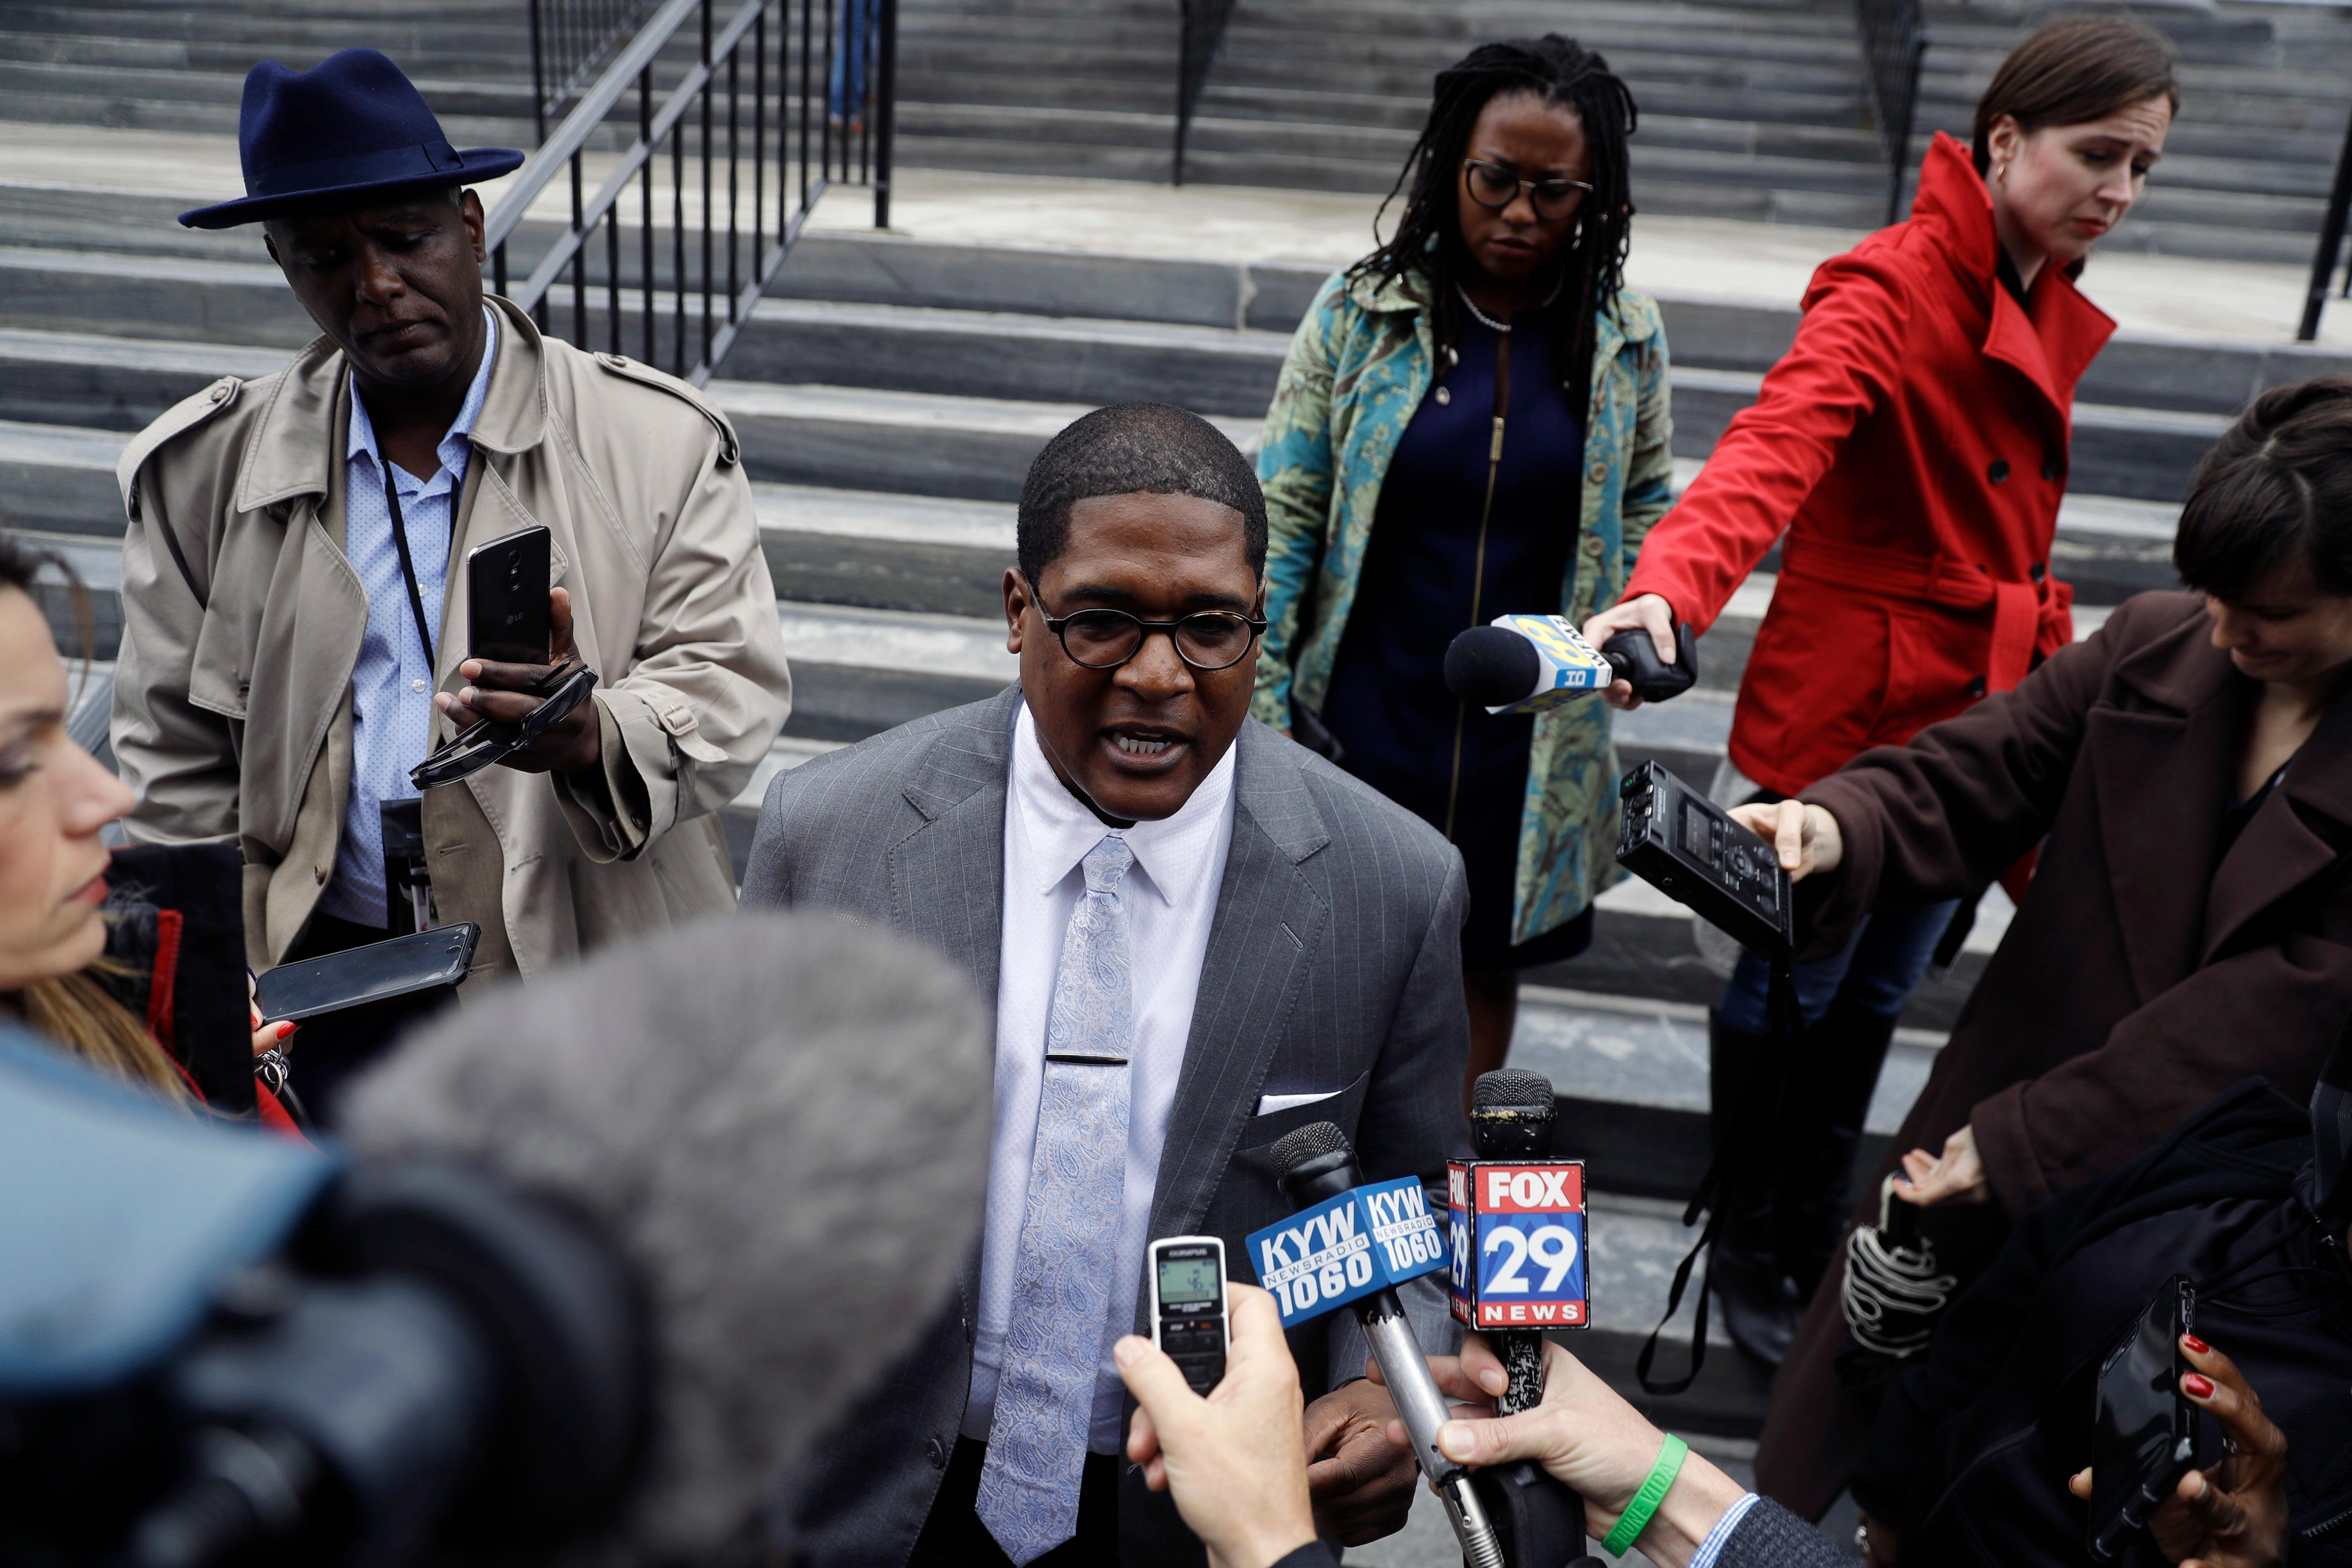 Bill Cosby's spokesman Andrew Wyatt speaks to the media outside the Montgomery County Courthouse during a break in Cosby's sexual assault retrial, Monday, April 16, 2018, in Norristown, Pa. (AP Photo/Matt Slocum)